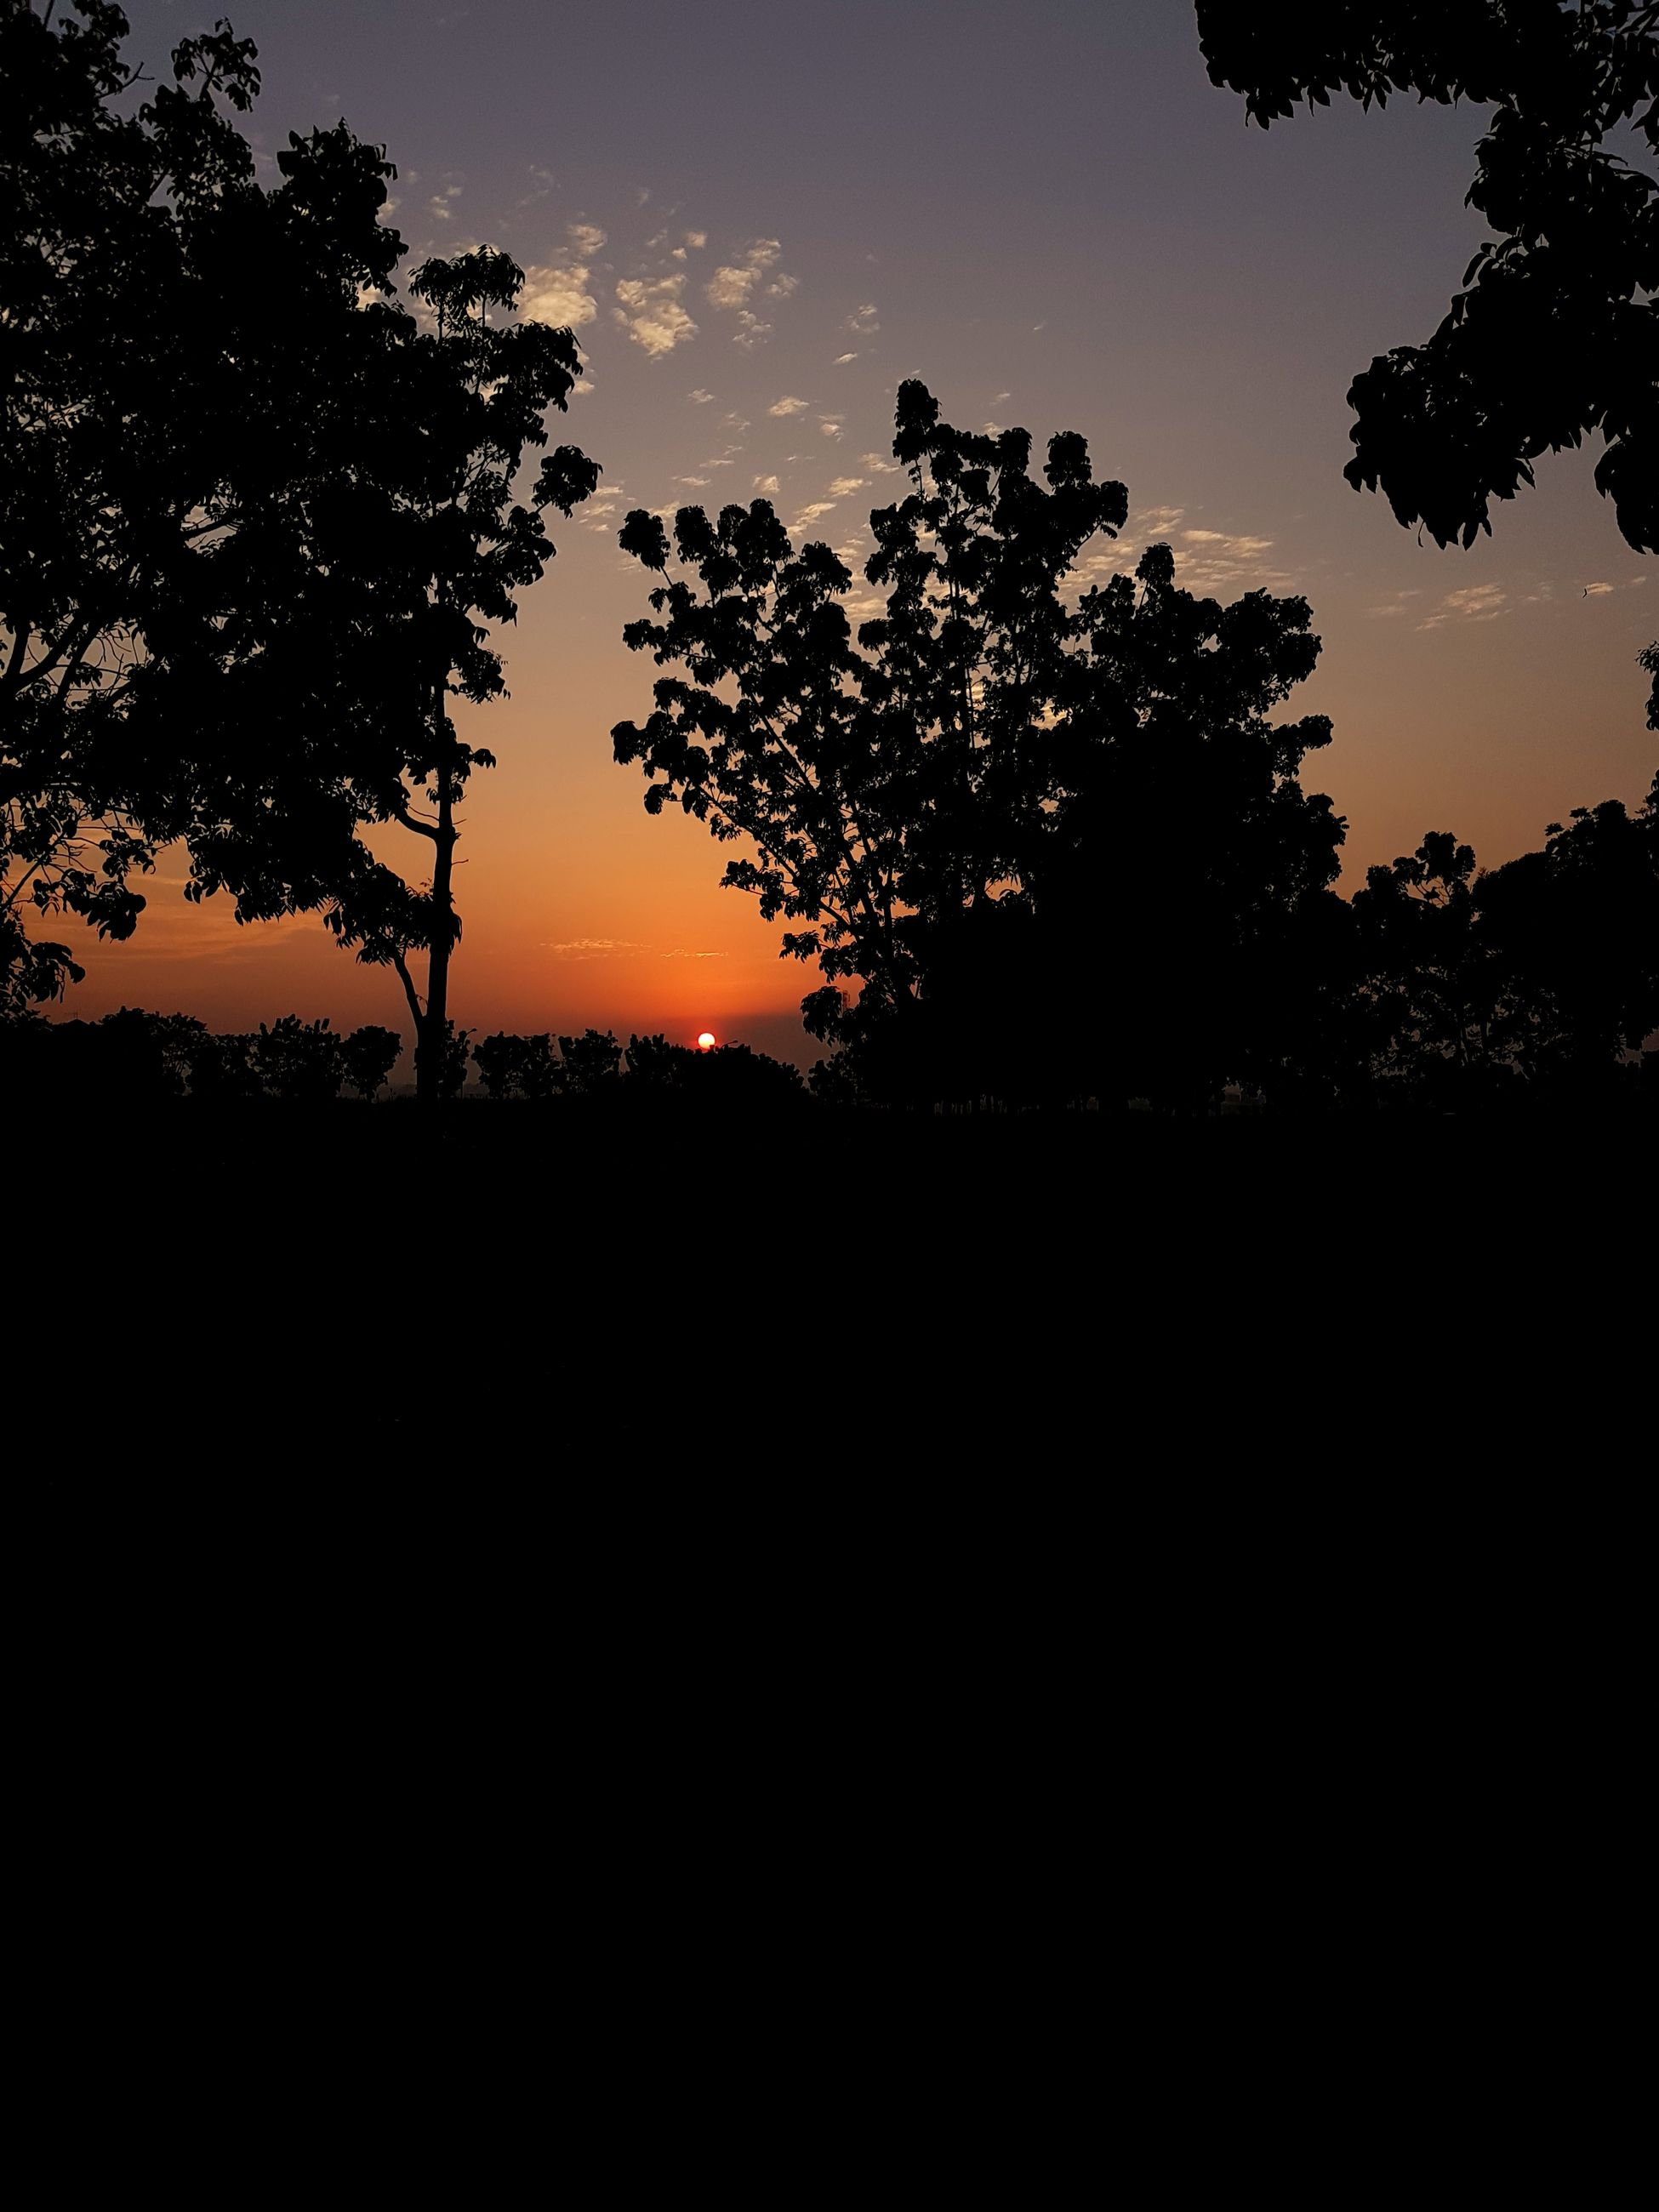 tree, sunset, silhouette, nature, beauty in nature, sky, scenics, tranquil scene, tranquility, landscape, orange color, growth, no people, outdoors, day